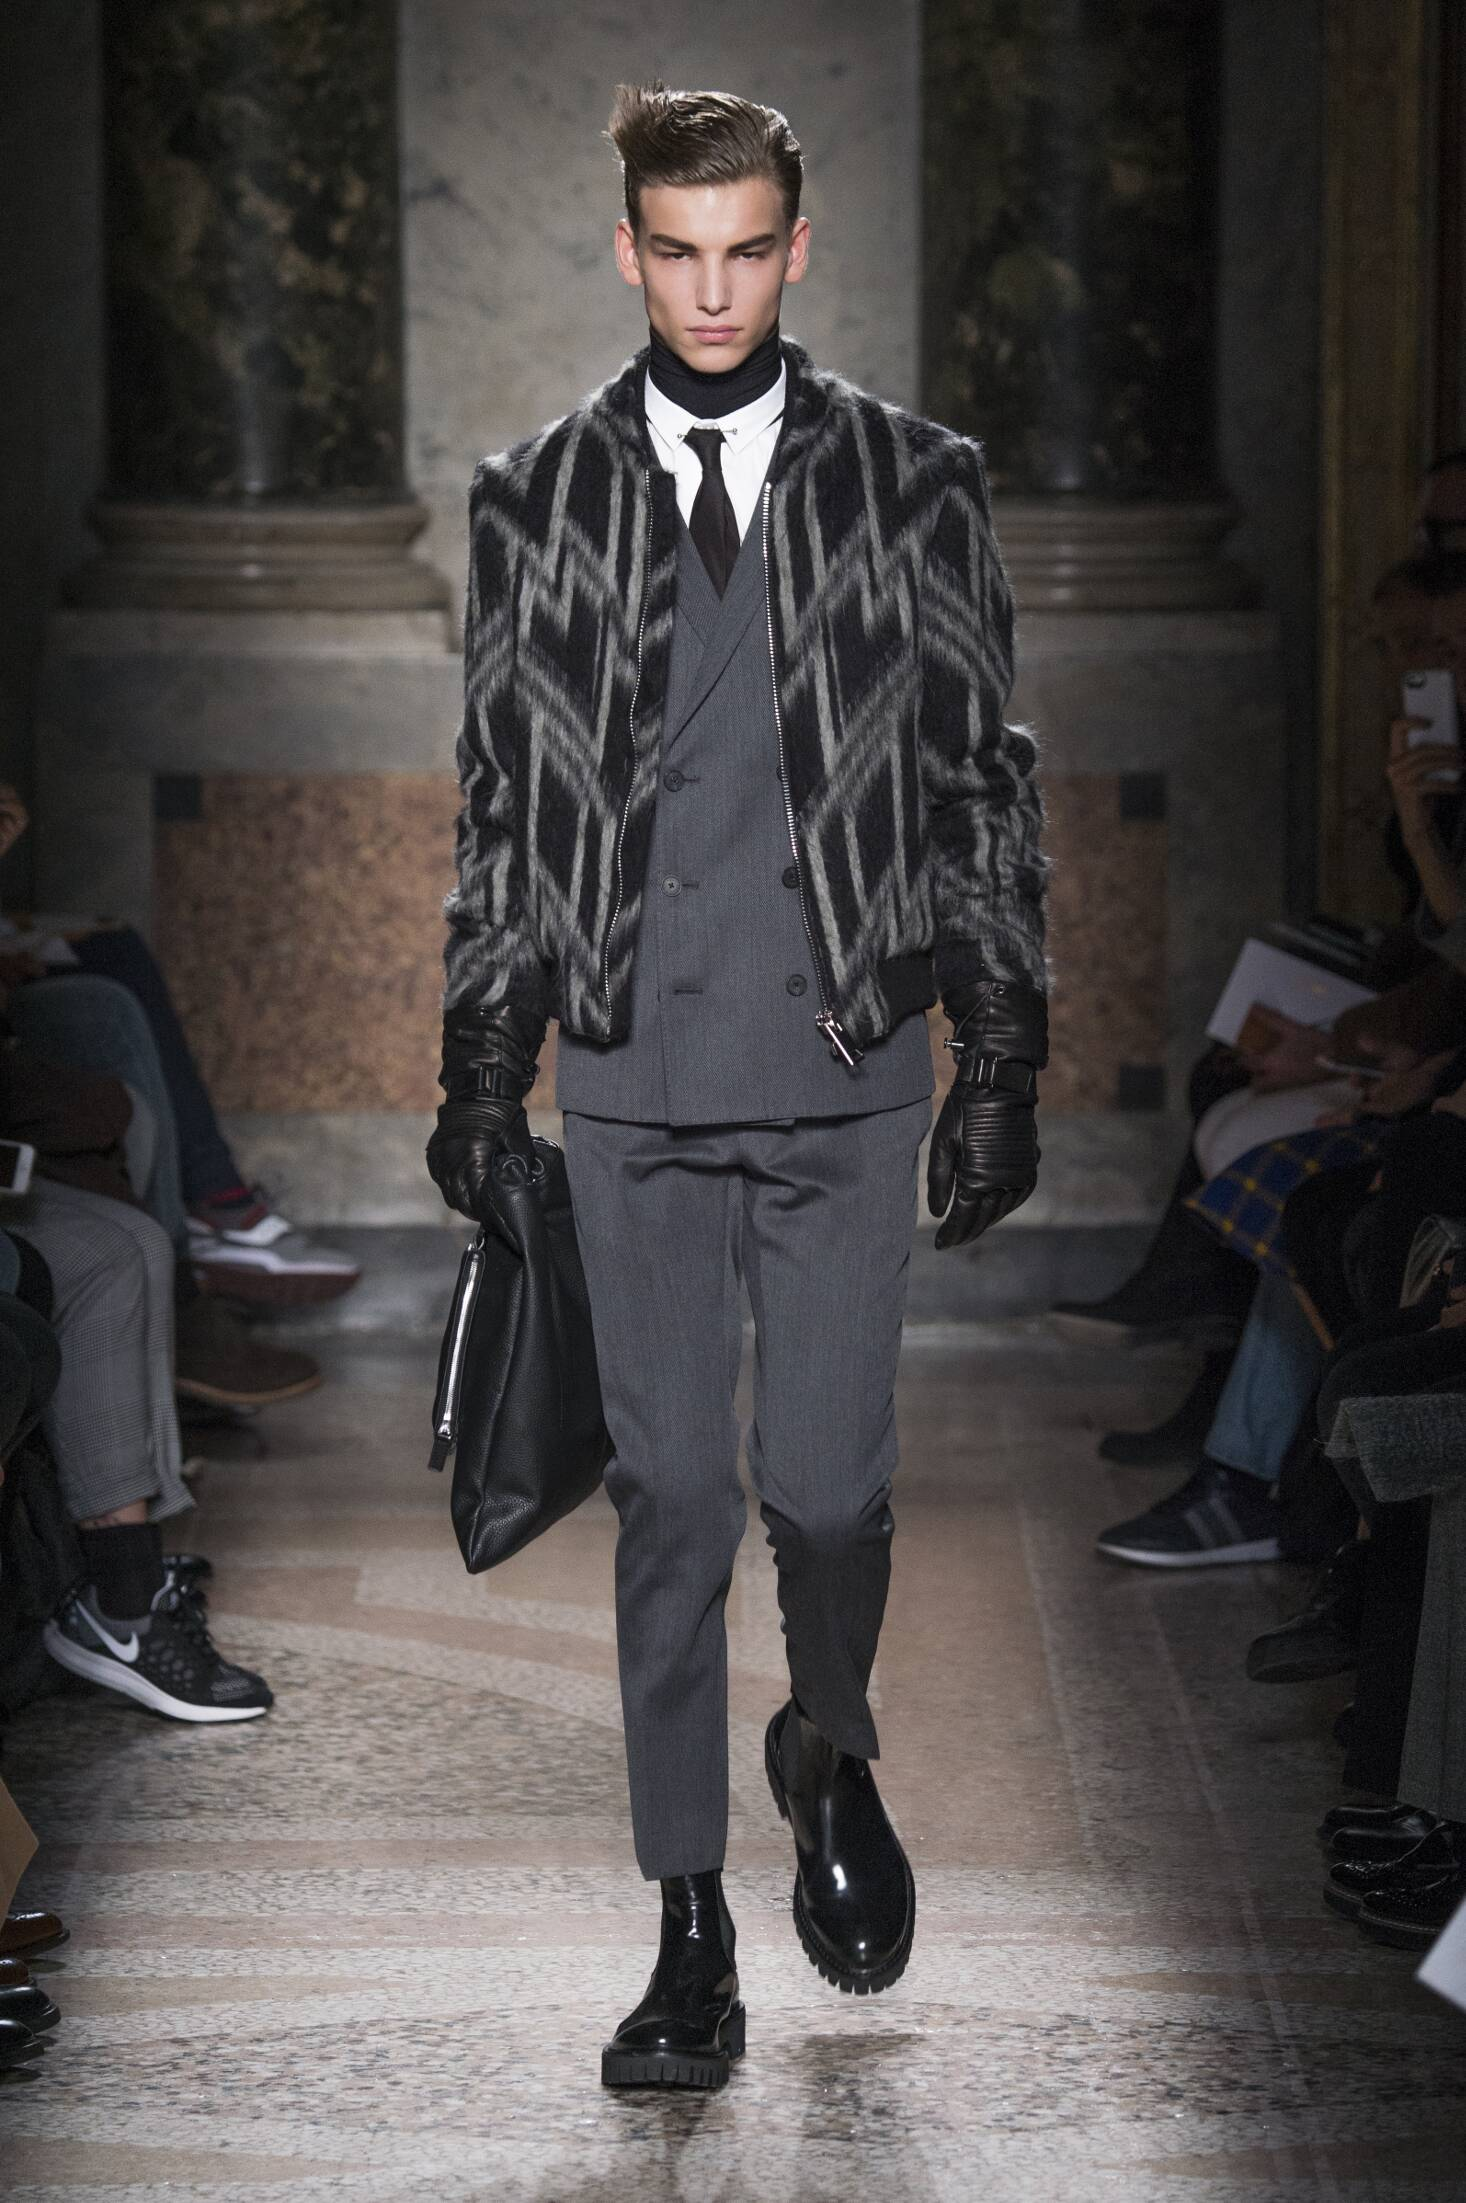 Fall Winter 2015 16 Fashion Men's Collection Les Hommes